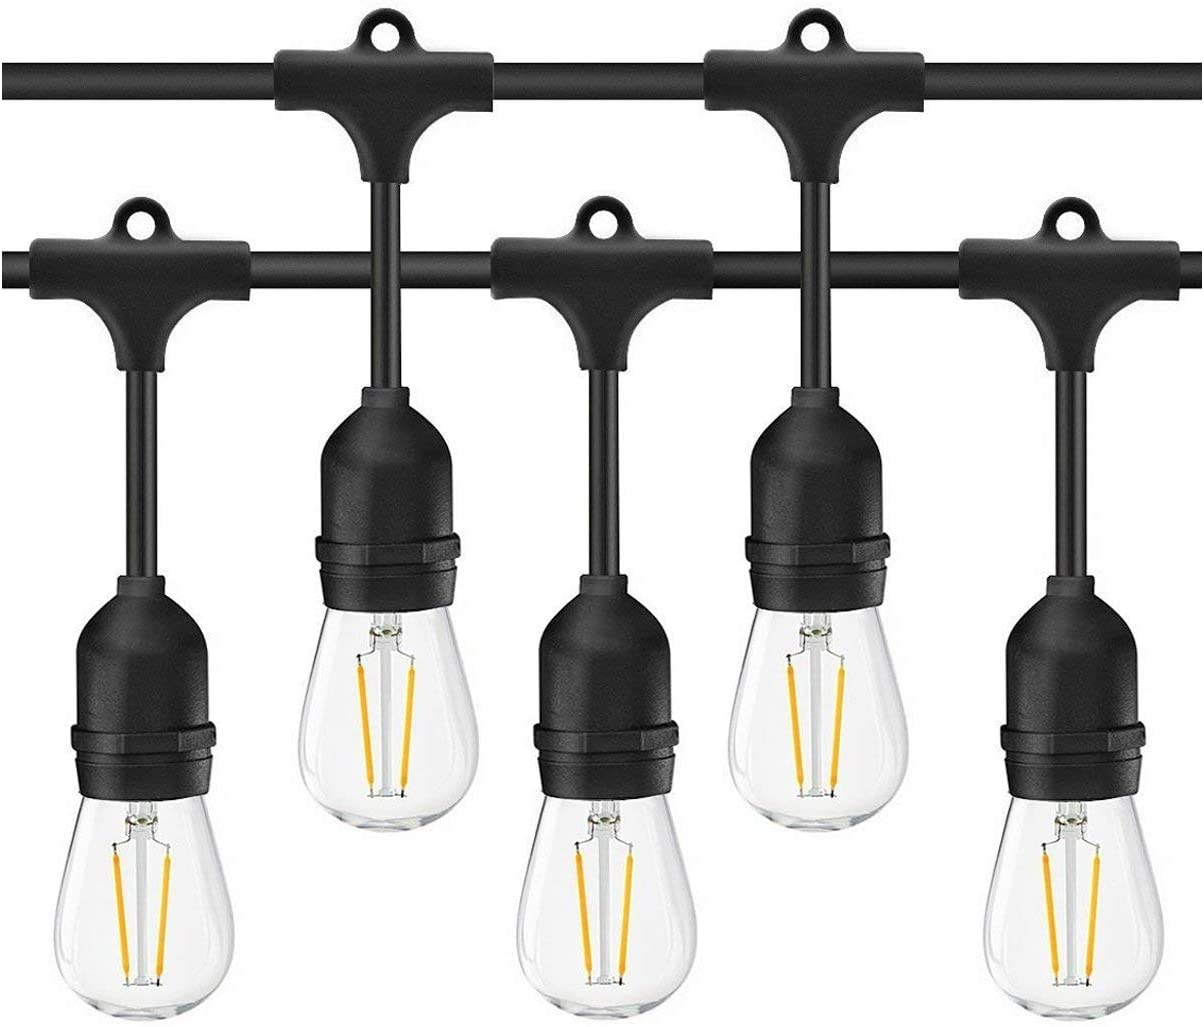 S14 String Lights 49Ft 15Pcs 2W LED Edison Filament Bulbs E27 Sockets Perfect for Party, Wedding, Anniversaries,Celebrations